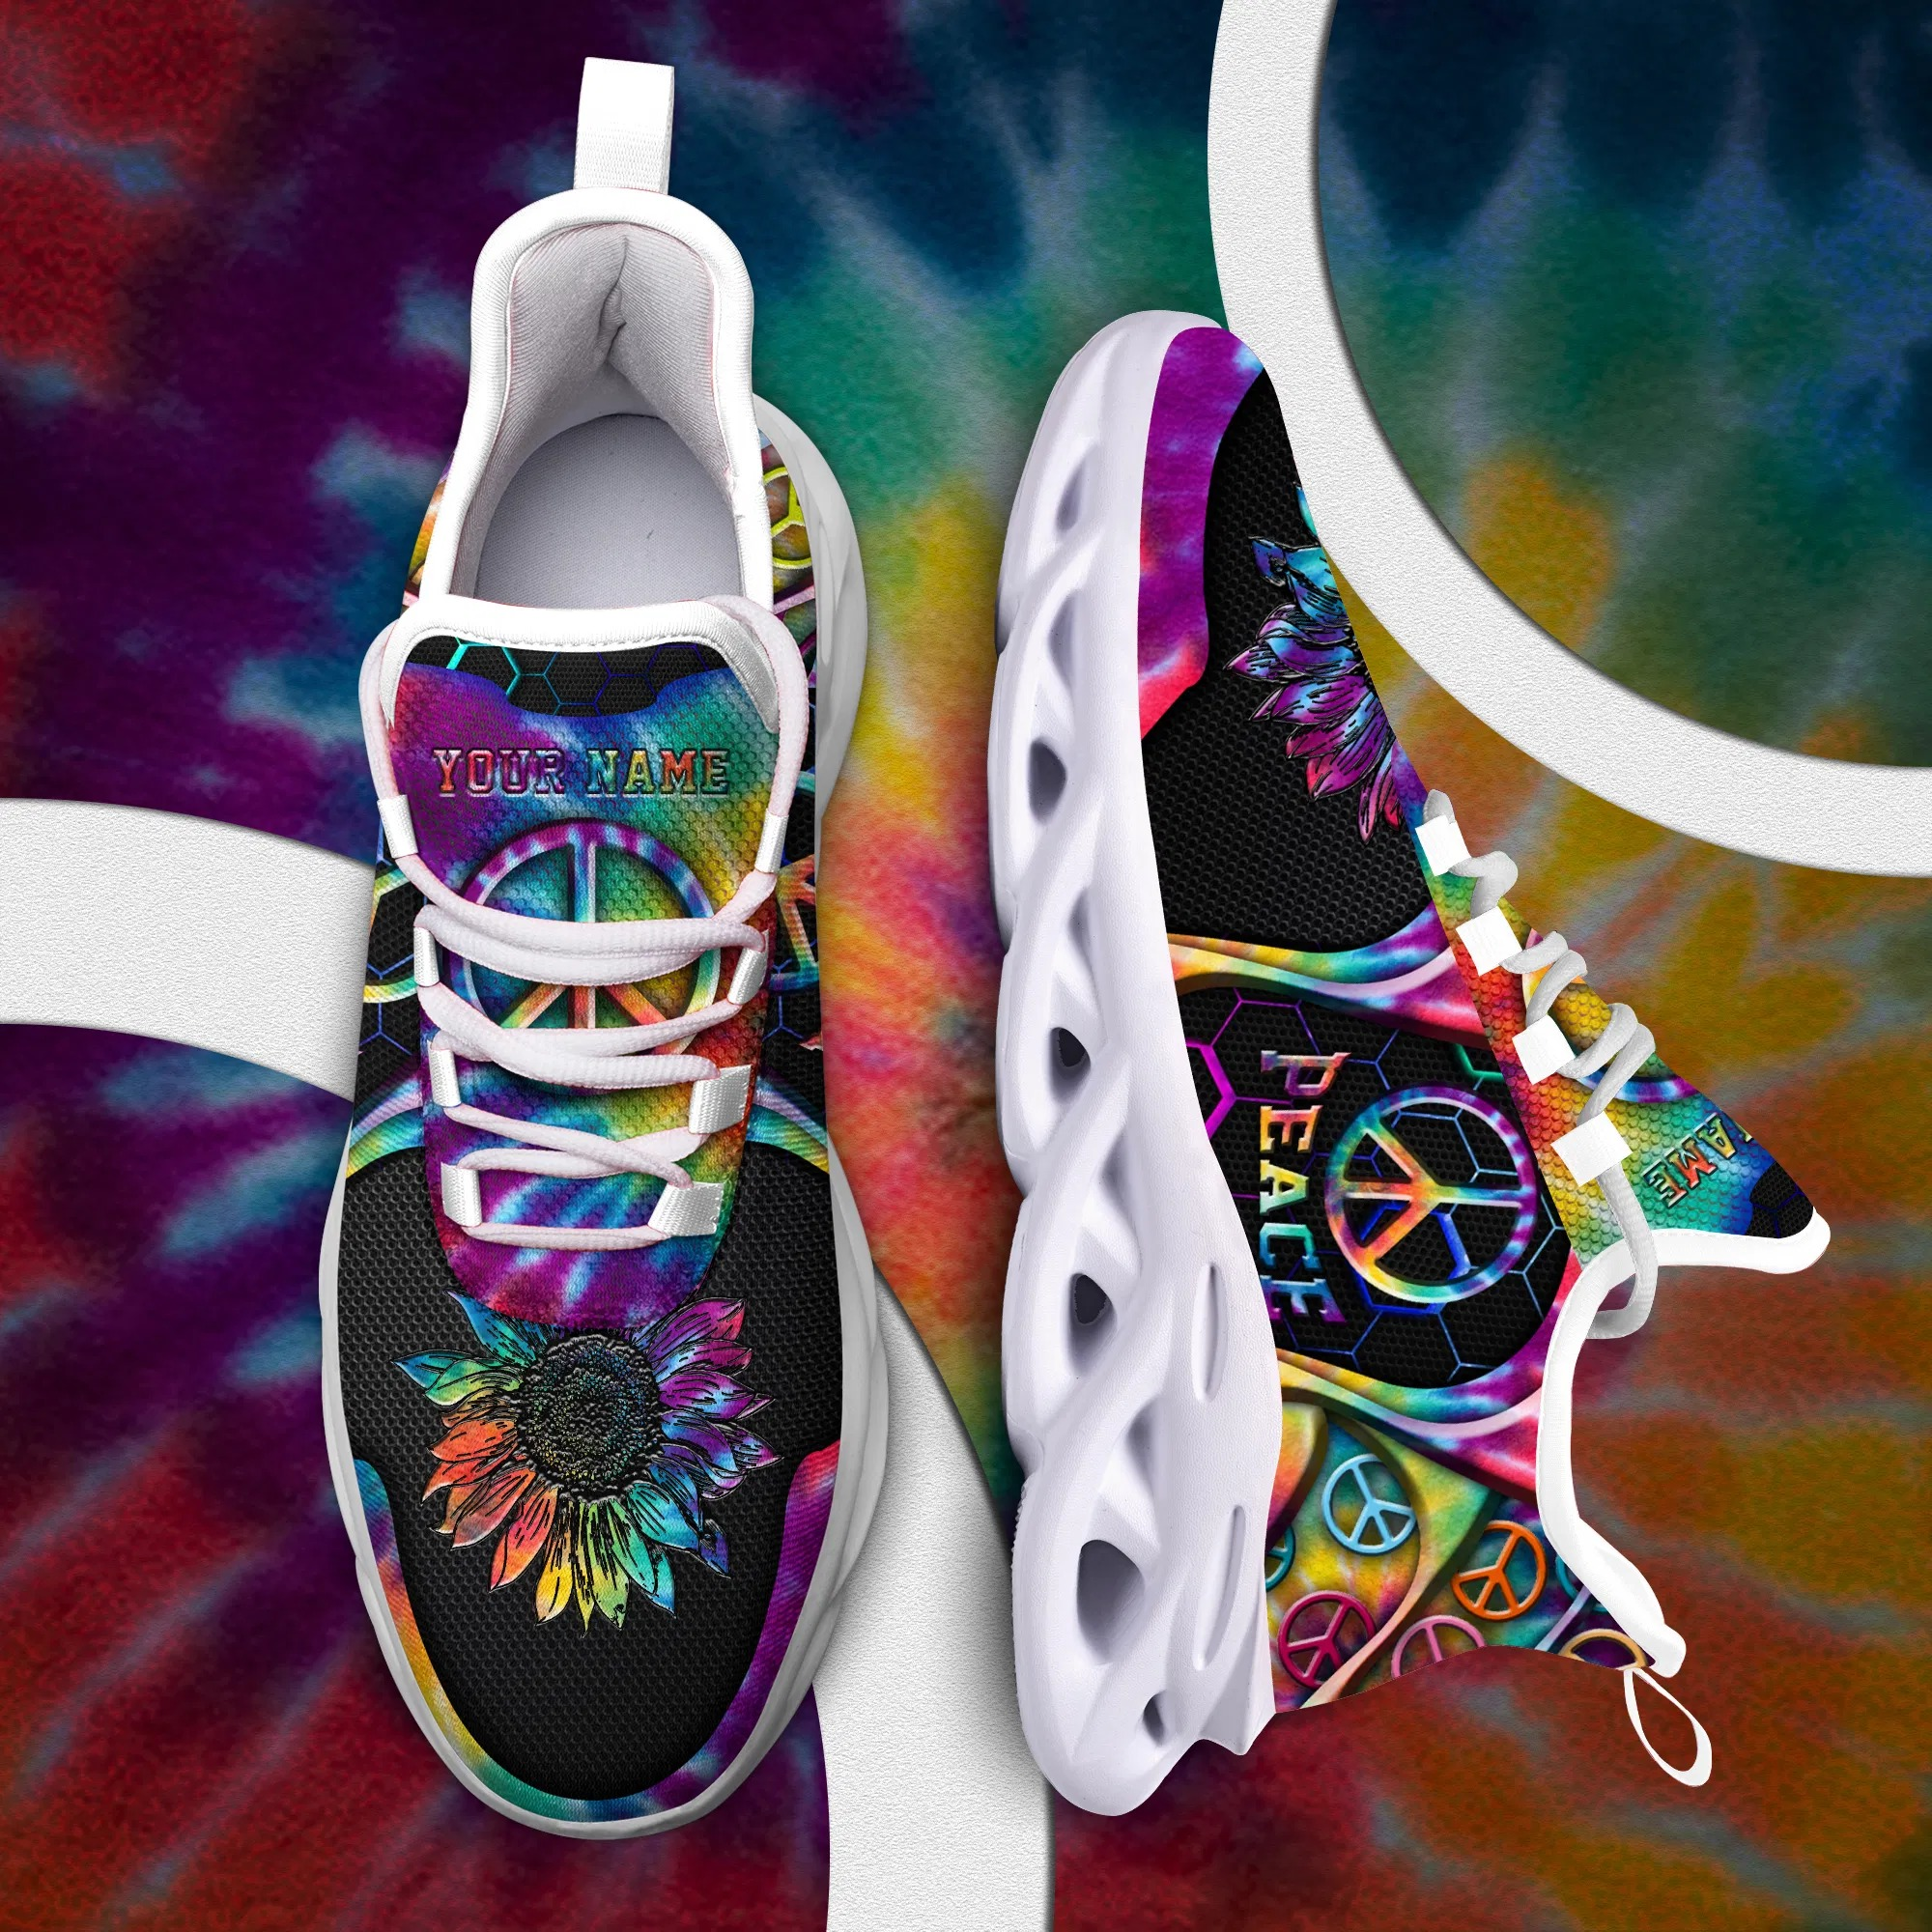 Hippie Clunky Custom Your Name Sneakers